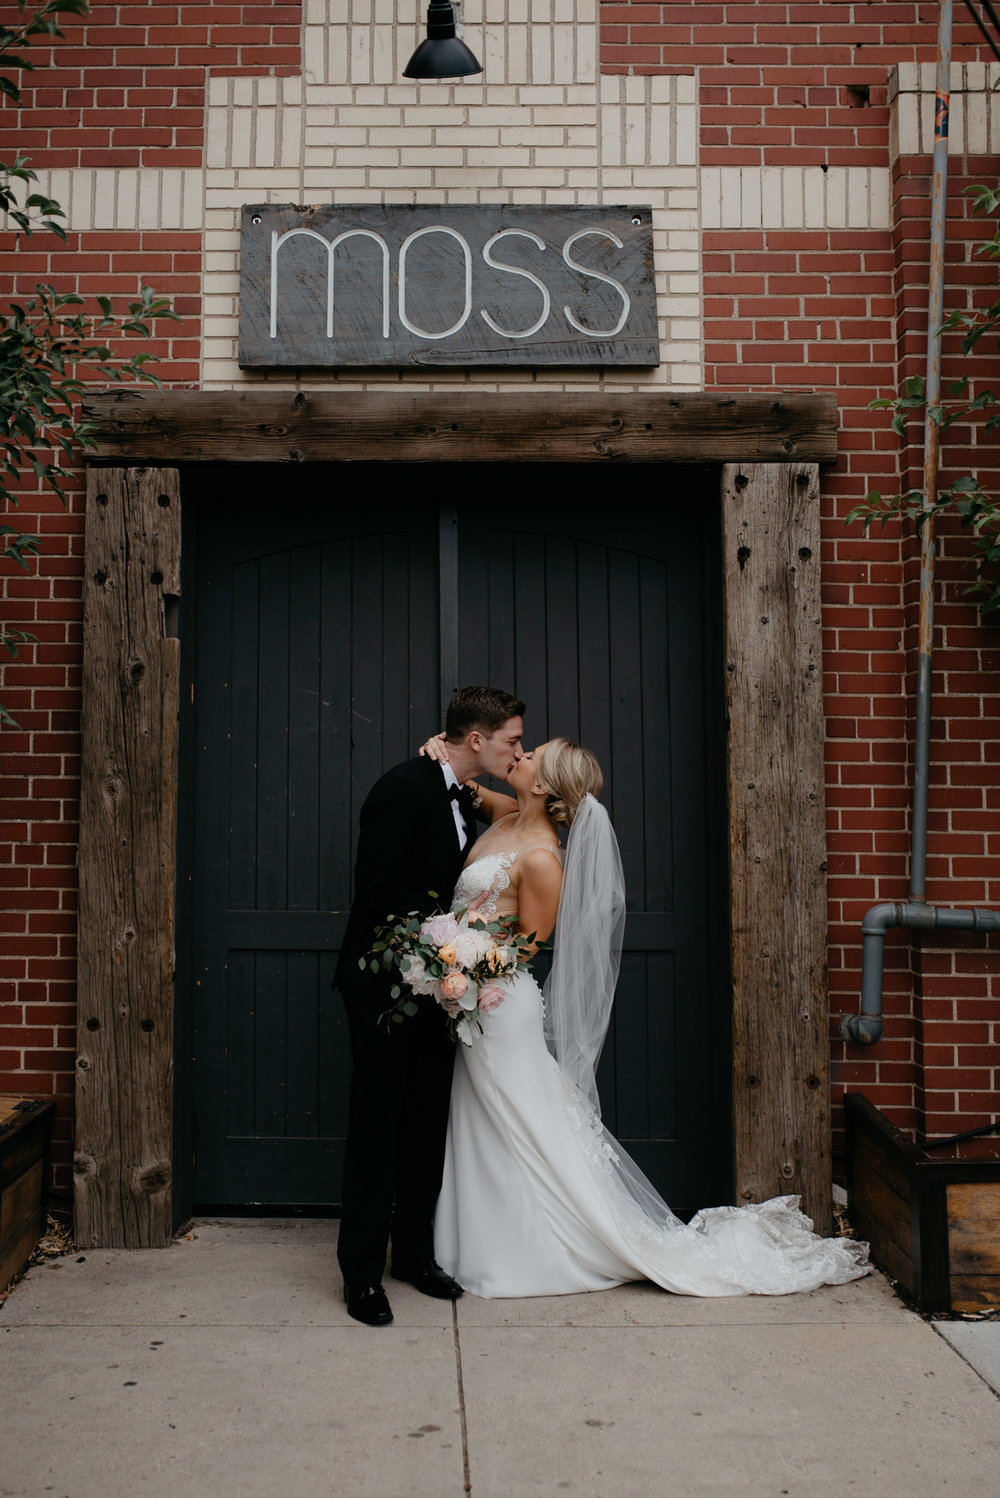 Bride and groom portraits at Denver wedding venue, Moss.